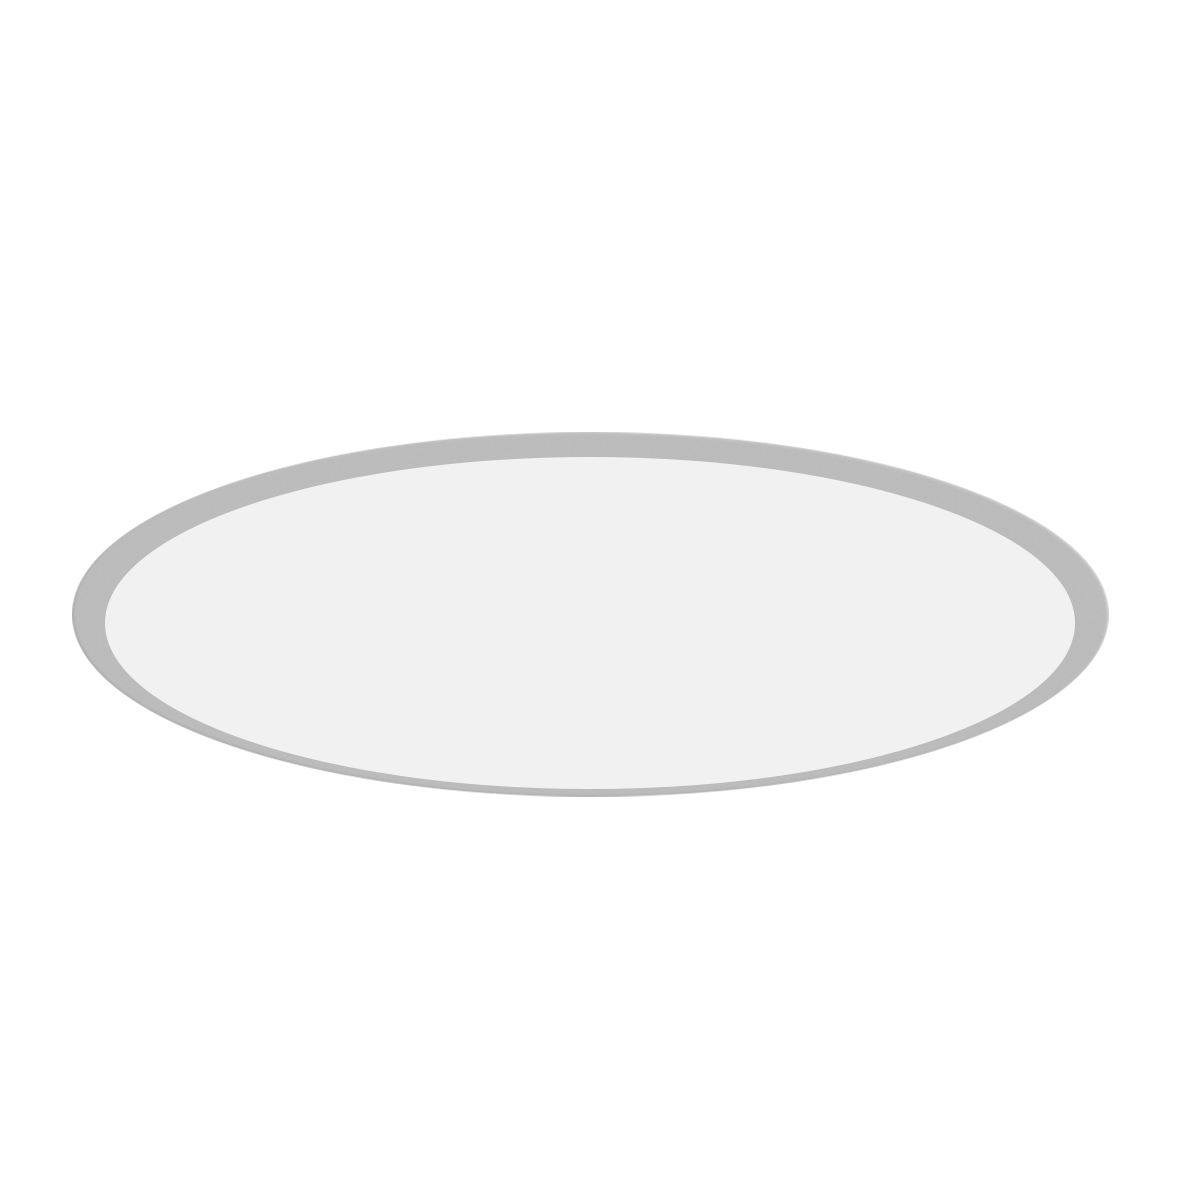 ROON H8 RECESSED